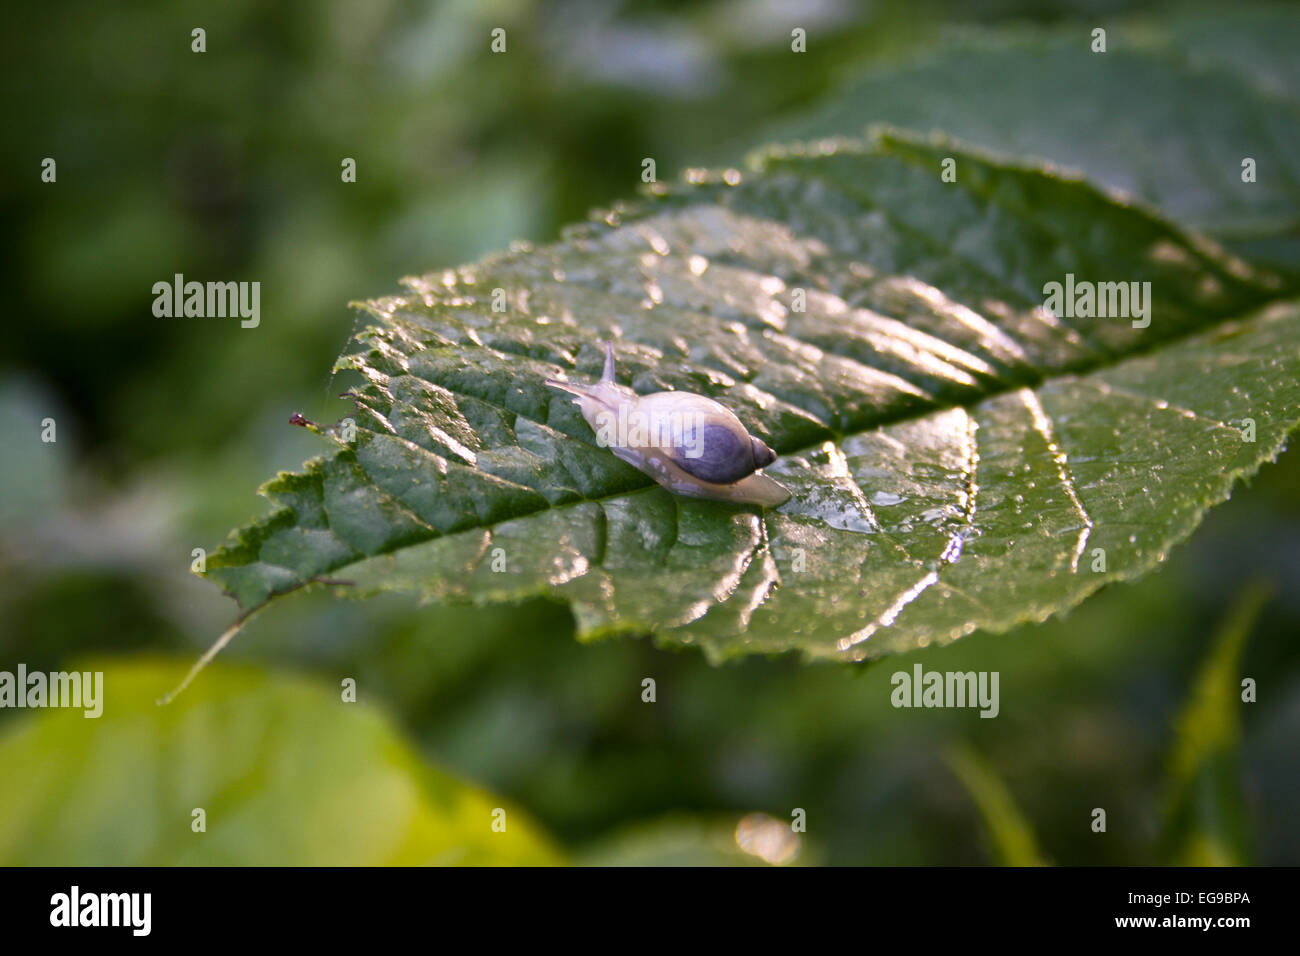 Wood snail on tree sheet - Stock Image